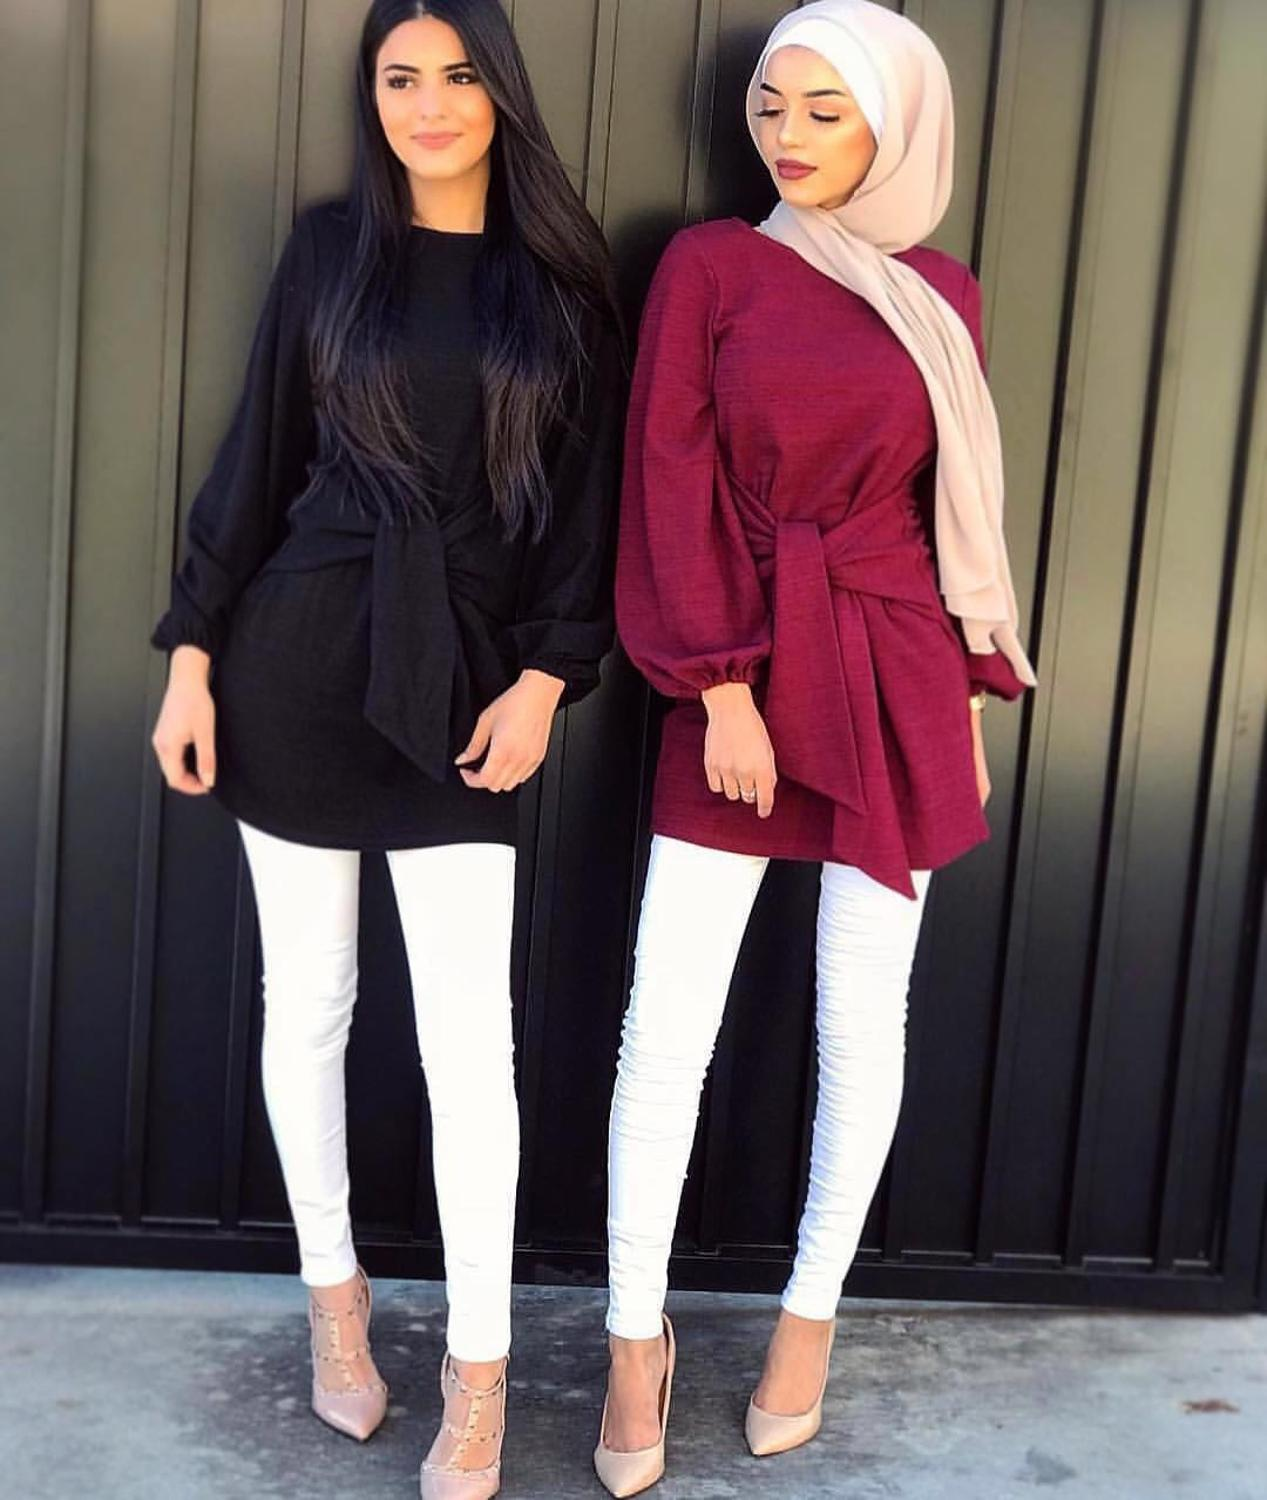 Elegant Women's Tops Muslim Blouse Shirt Dress Belt Long Abaya Robe Gowns Jubah Ramadan Arabic Dubai Kaftan Islamic Clothing